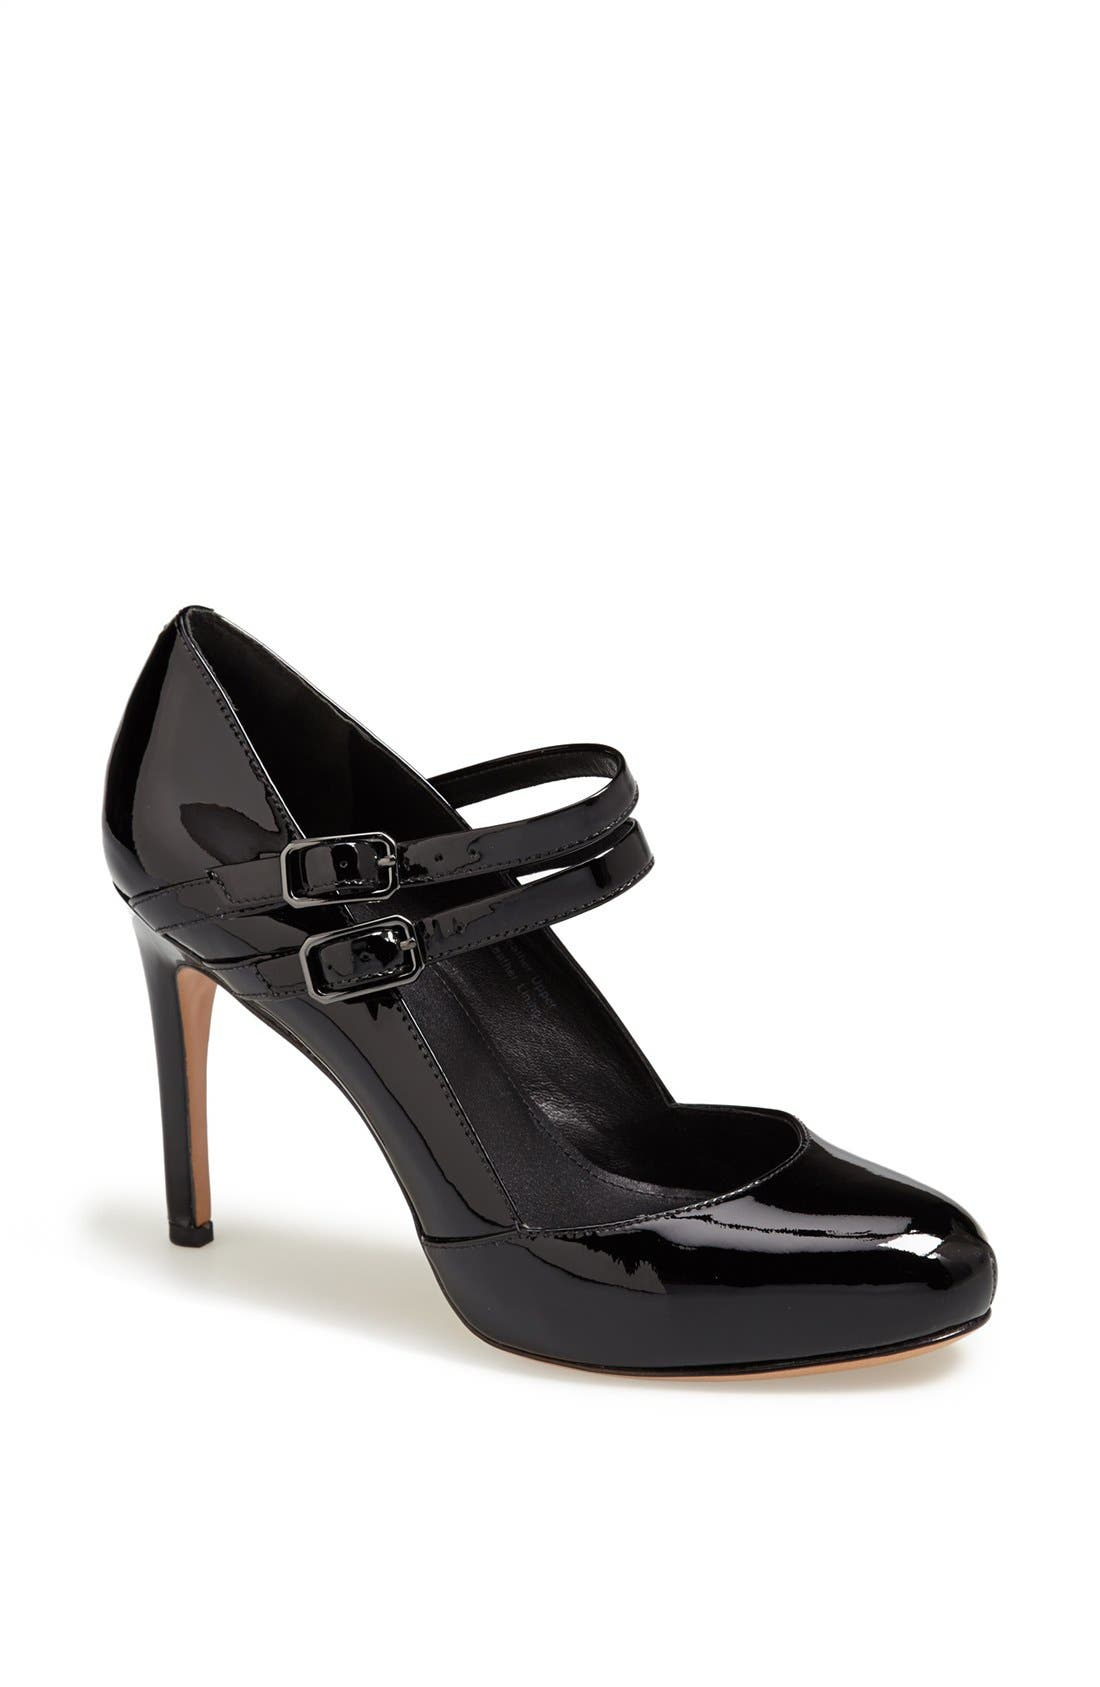 Alternate Image 1 Selected - Via Spiga 'Ballard' Mary Jane Pump